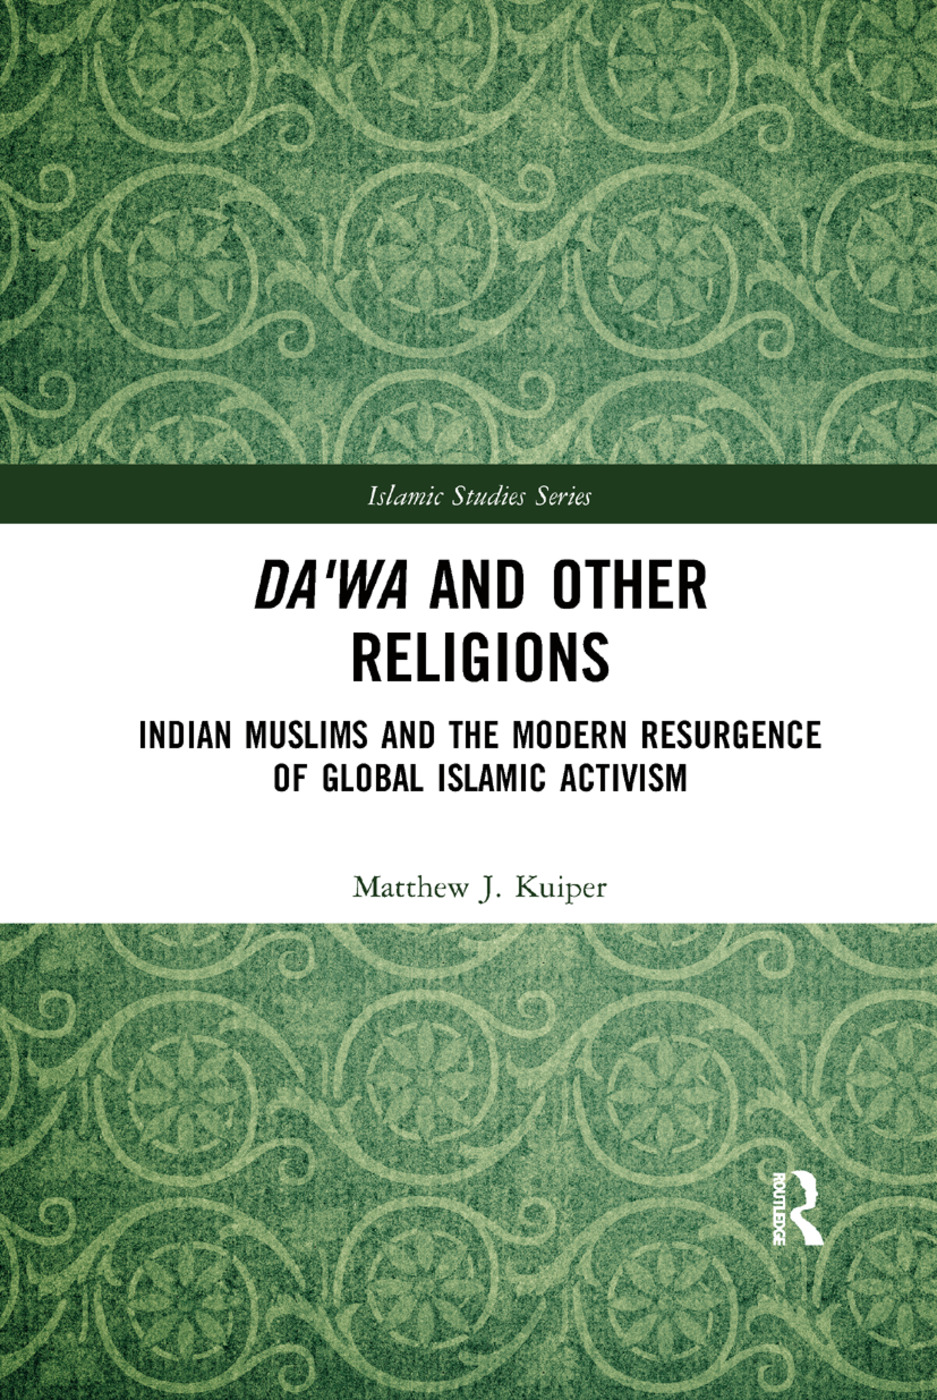 Da'wa and Other Religions: Indian Muslims and the Modern Resurgence of Global Islamic Activism book cover